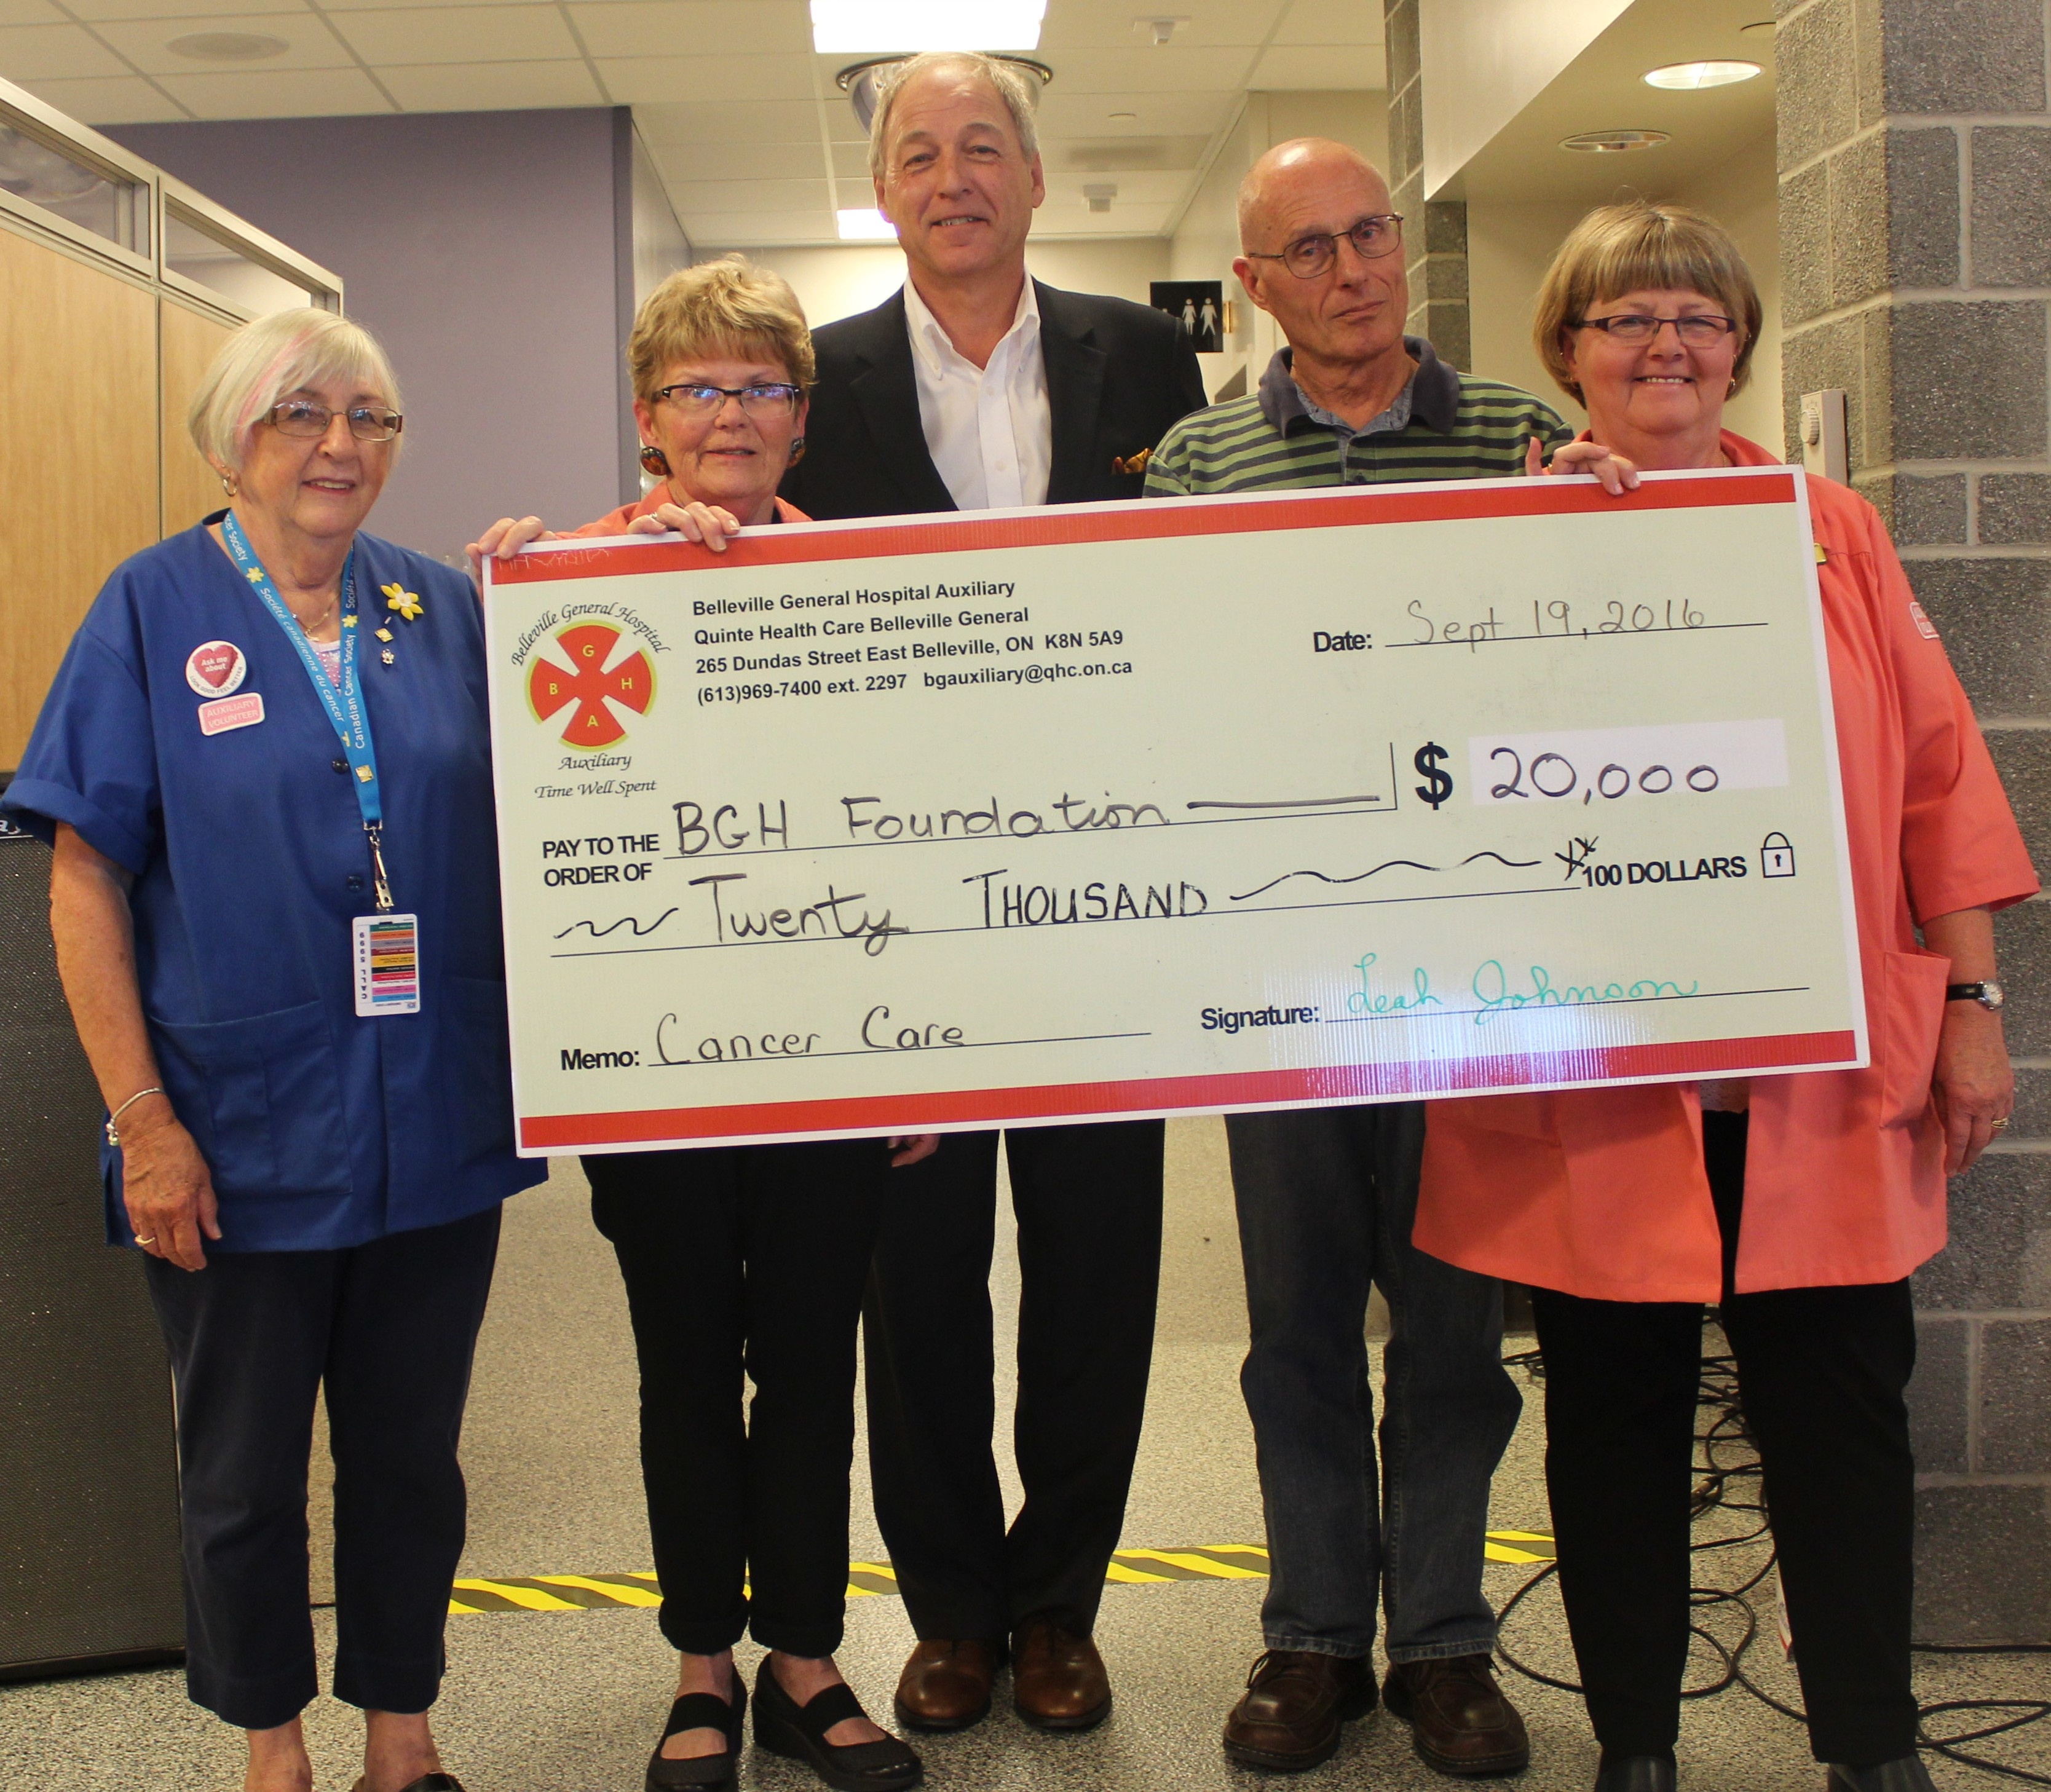 $20,000 cheque from the Auxiliary as part of the opening ceremonies